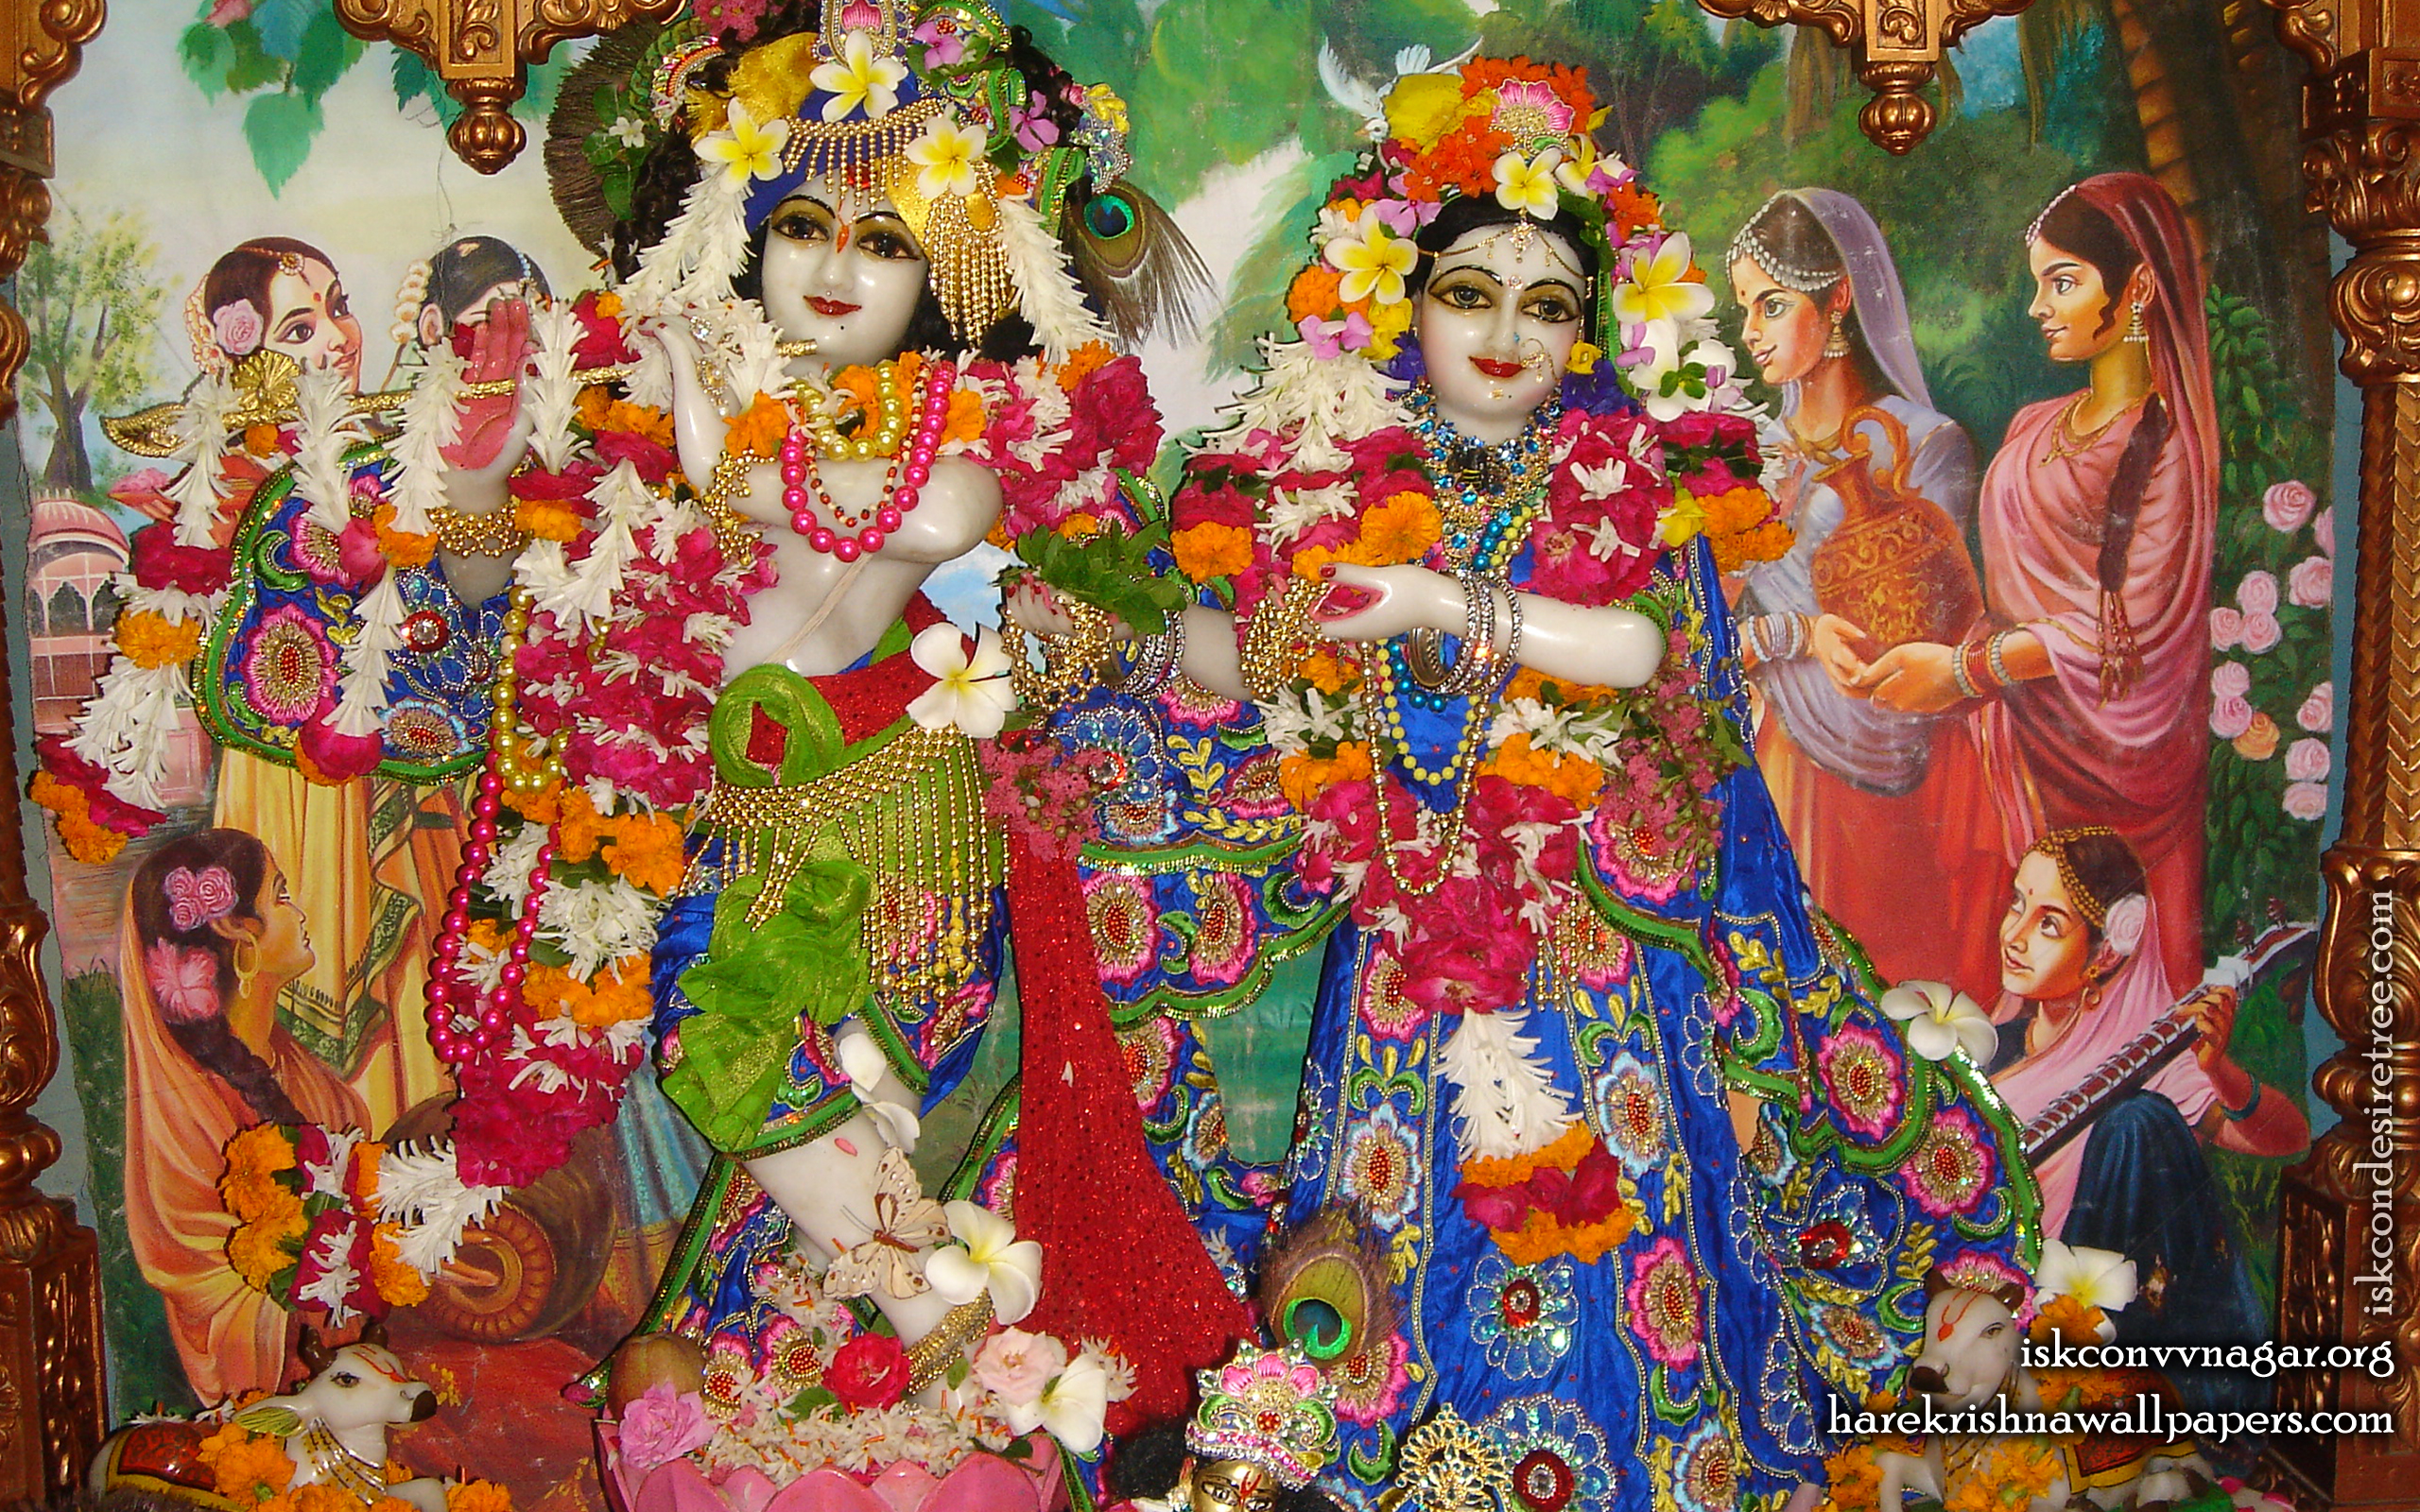 Sri Sri Radha Giridhari Wallpaper (026) Size 2560x1600 Download